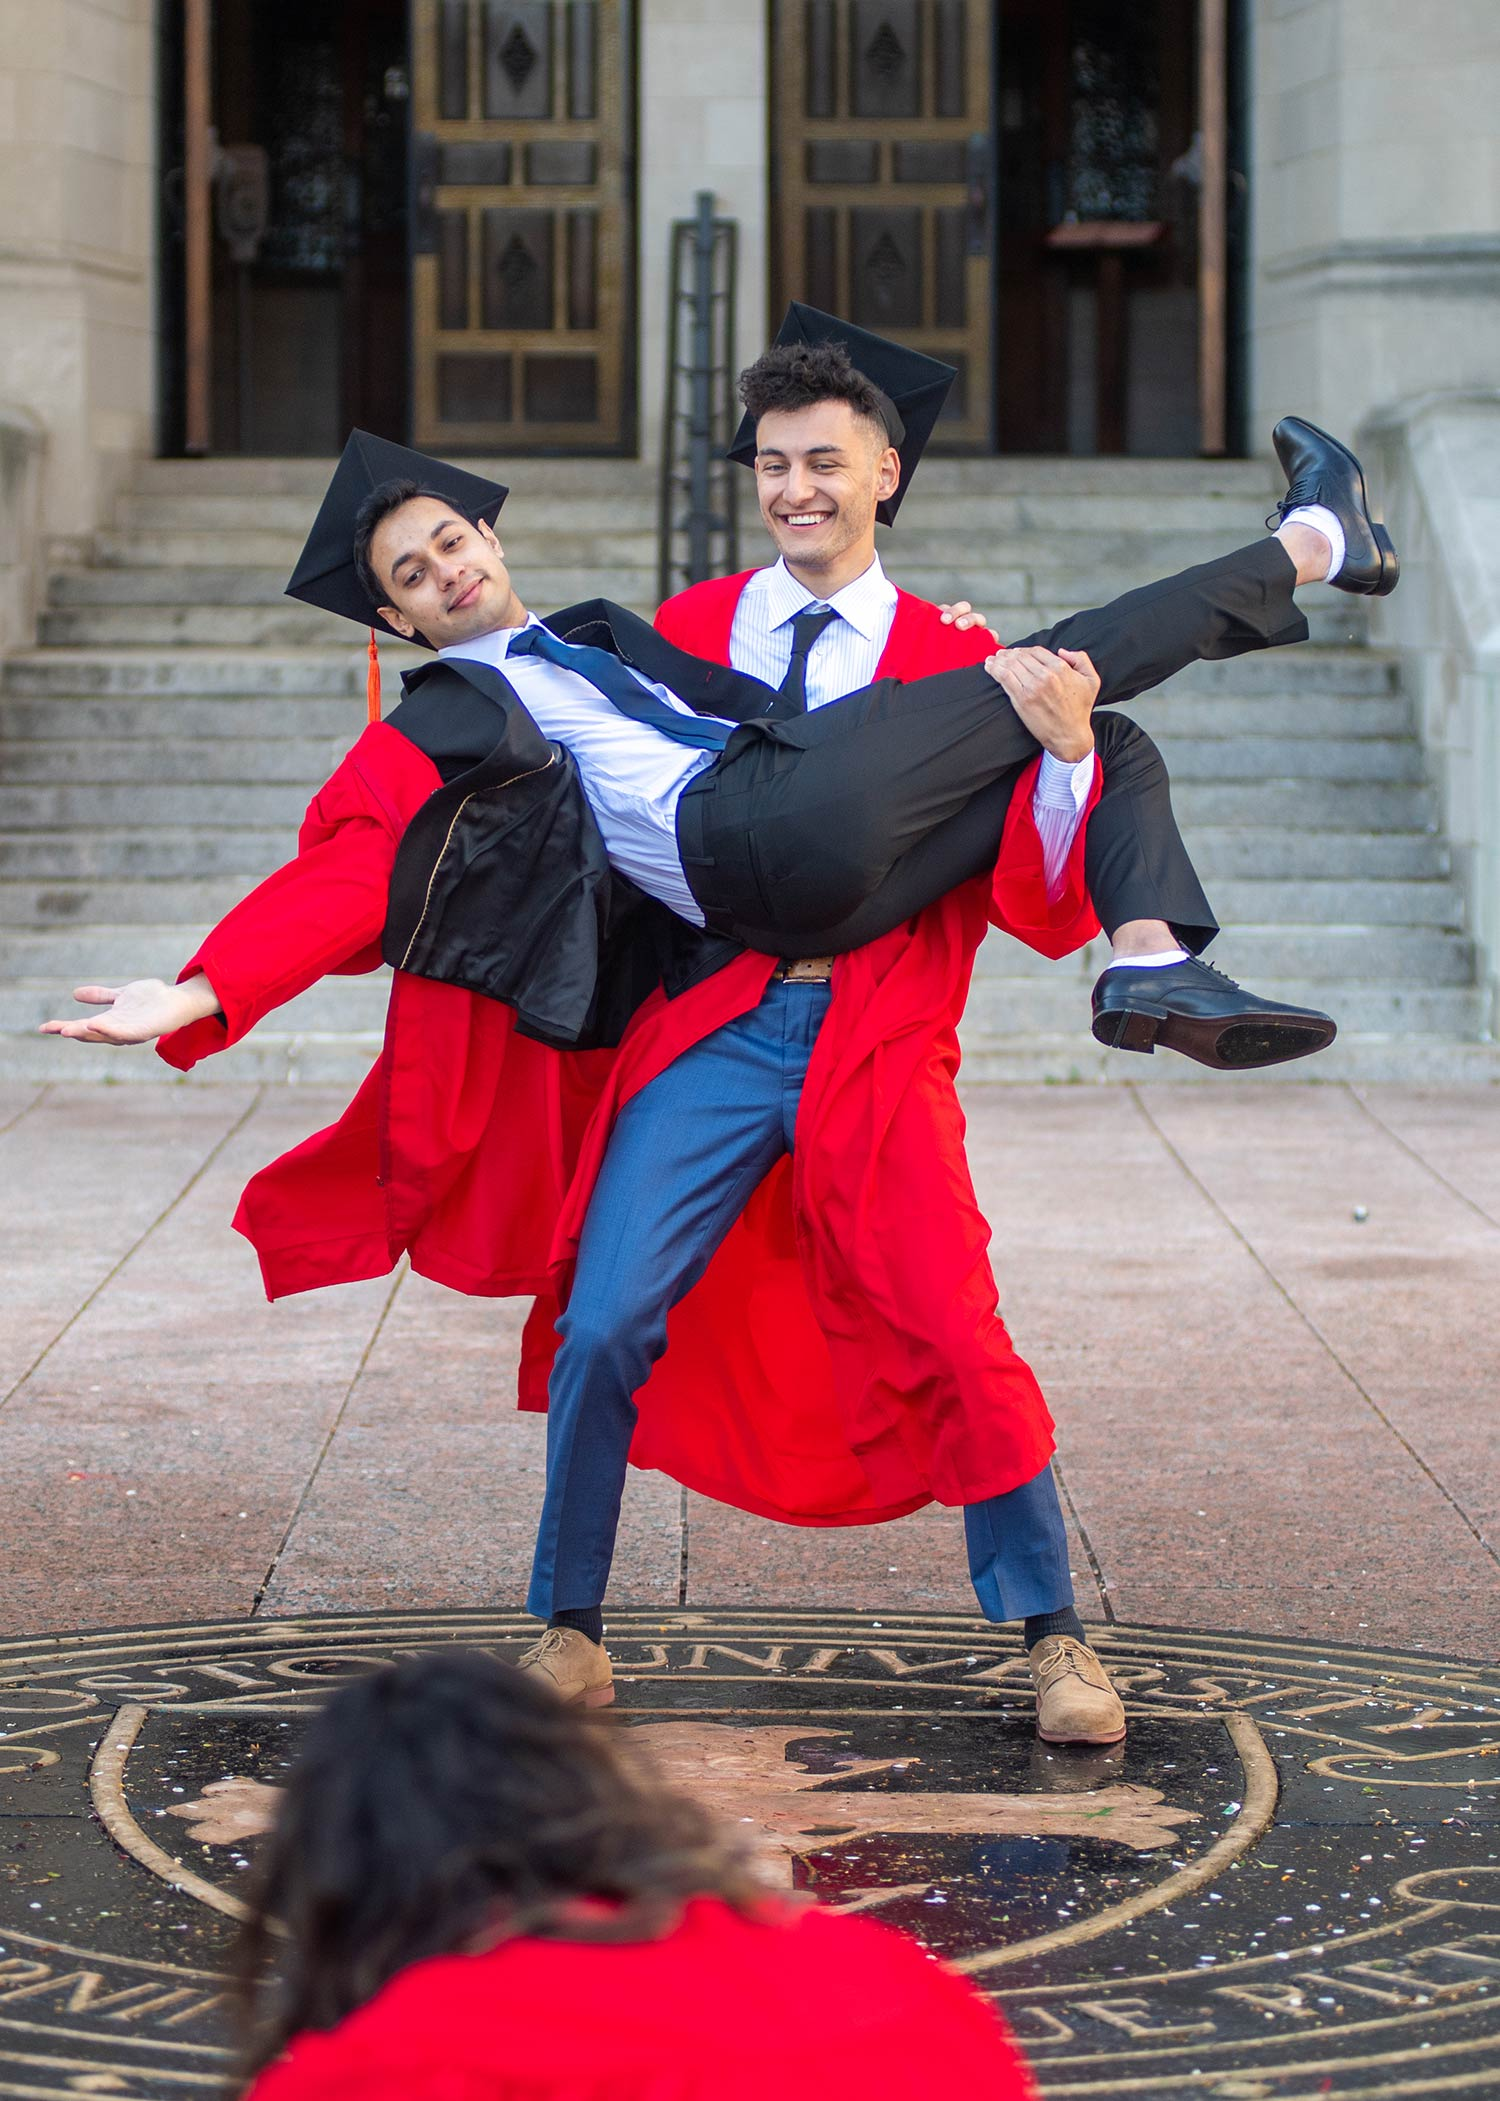 Photo of Mrinal Ghosh (ENG'21) with his arms and legs extended as Camden Kronhaus (ENG'21) holds him up over the seal in Marsh Plaza May 11. They both wear suits and their caps and gowns and smile.